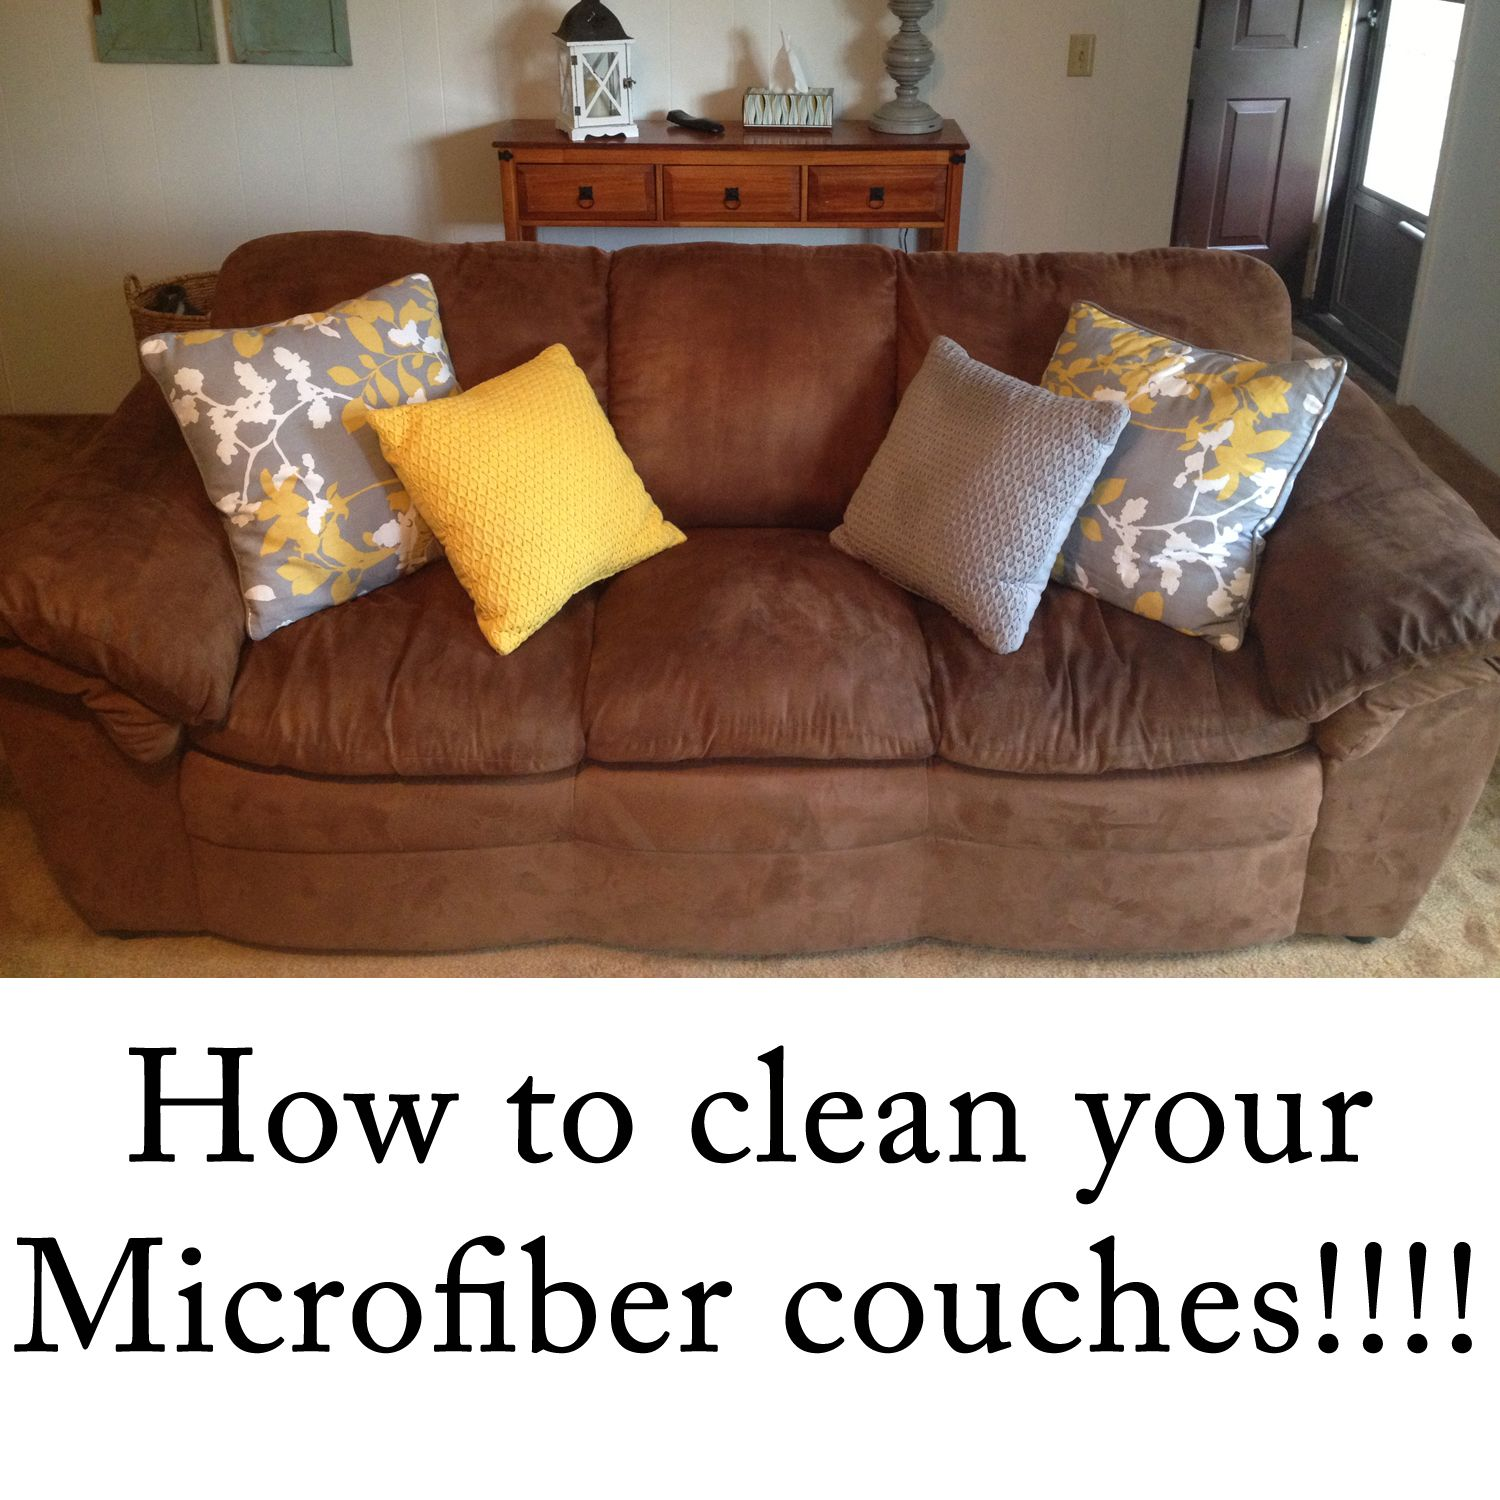 clean microfiber sofa with vodka costco furniture sleeper sofas 25 43 bästa couch cleaner idéerna på pinterest soffa i